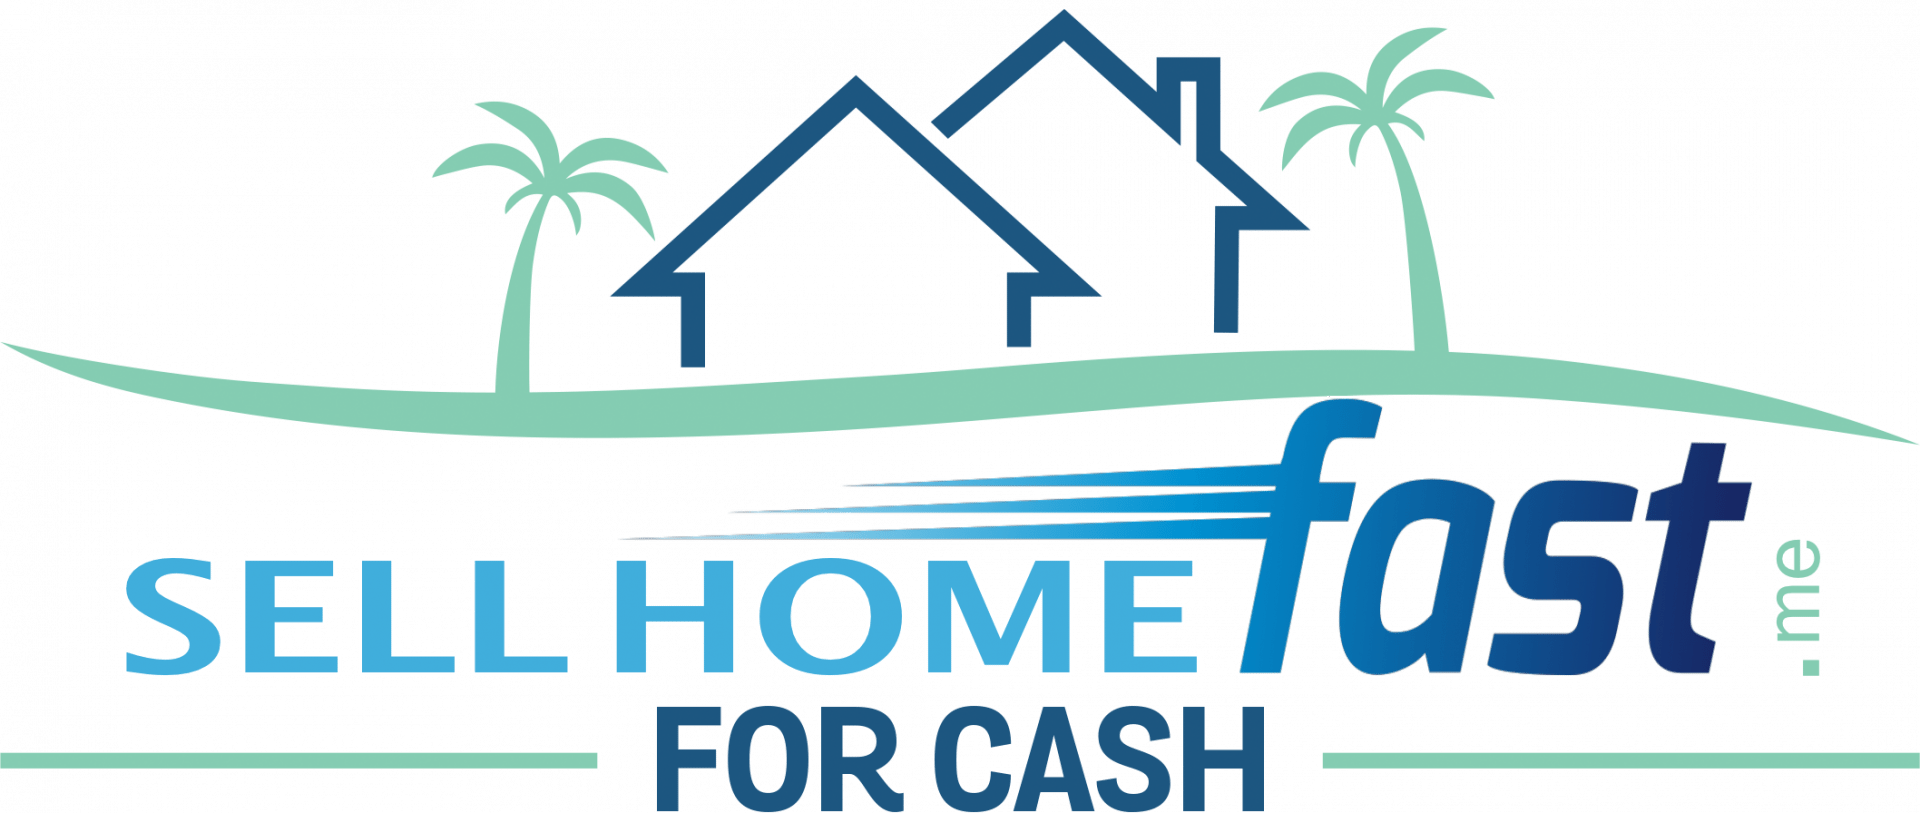 Sell Home Fast for Cash logo